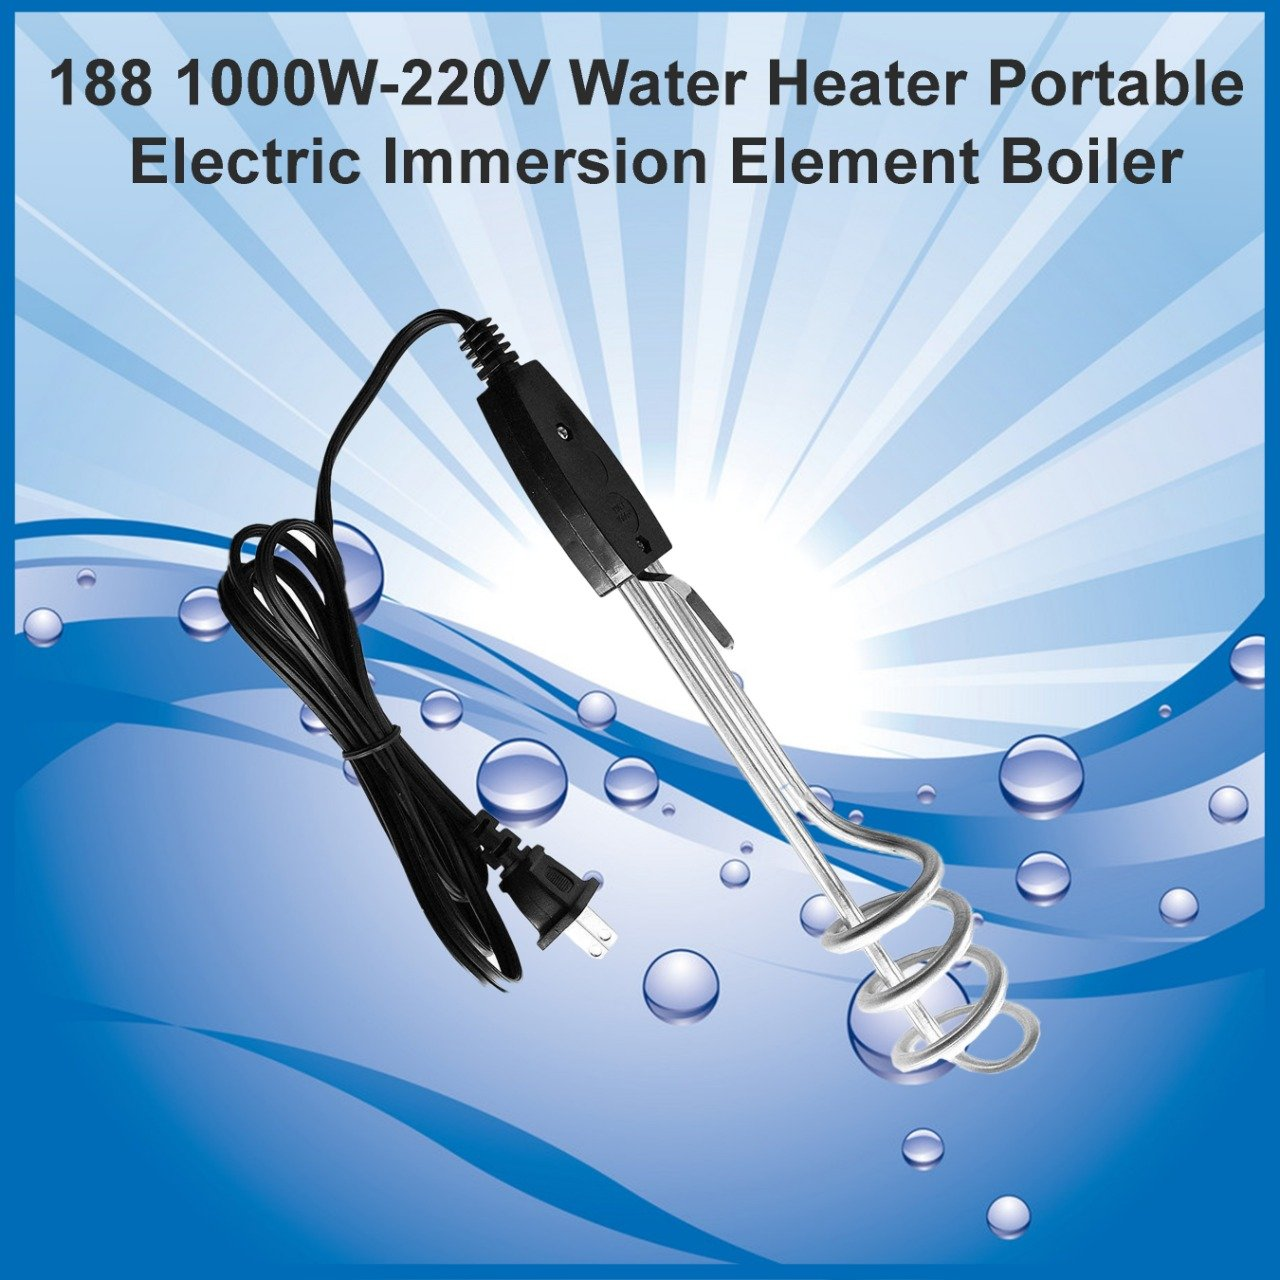 1000W-220V Water Heater Portable Electric Immersion Element Boiler